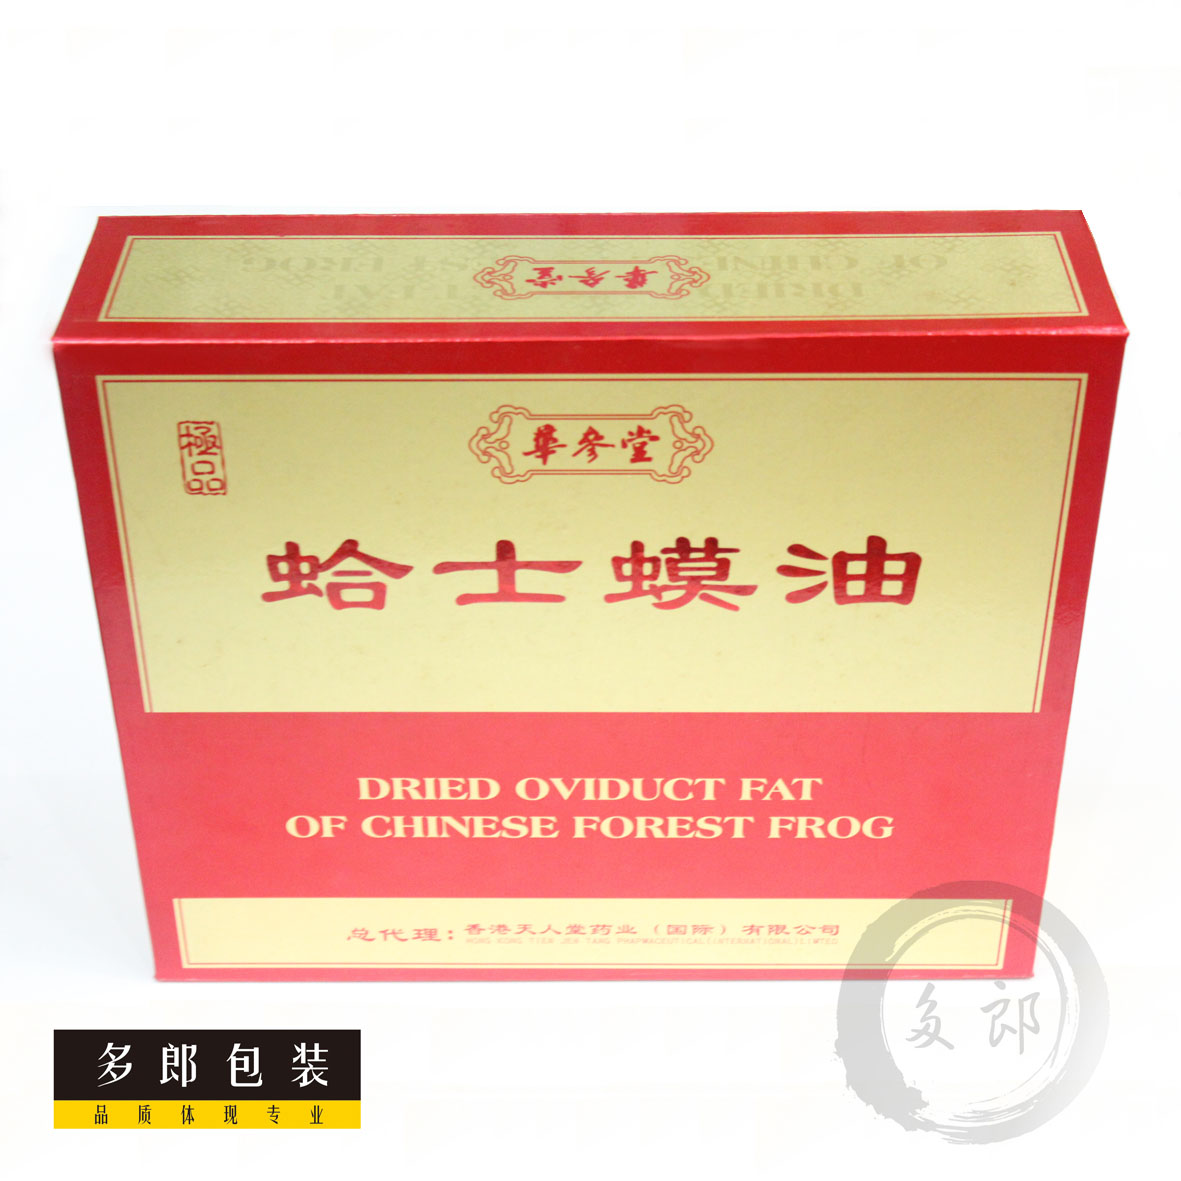 Exquisite gift box gift box packaging box made ²èò¶ºð specialty ginseng box wine box custom made to order